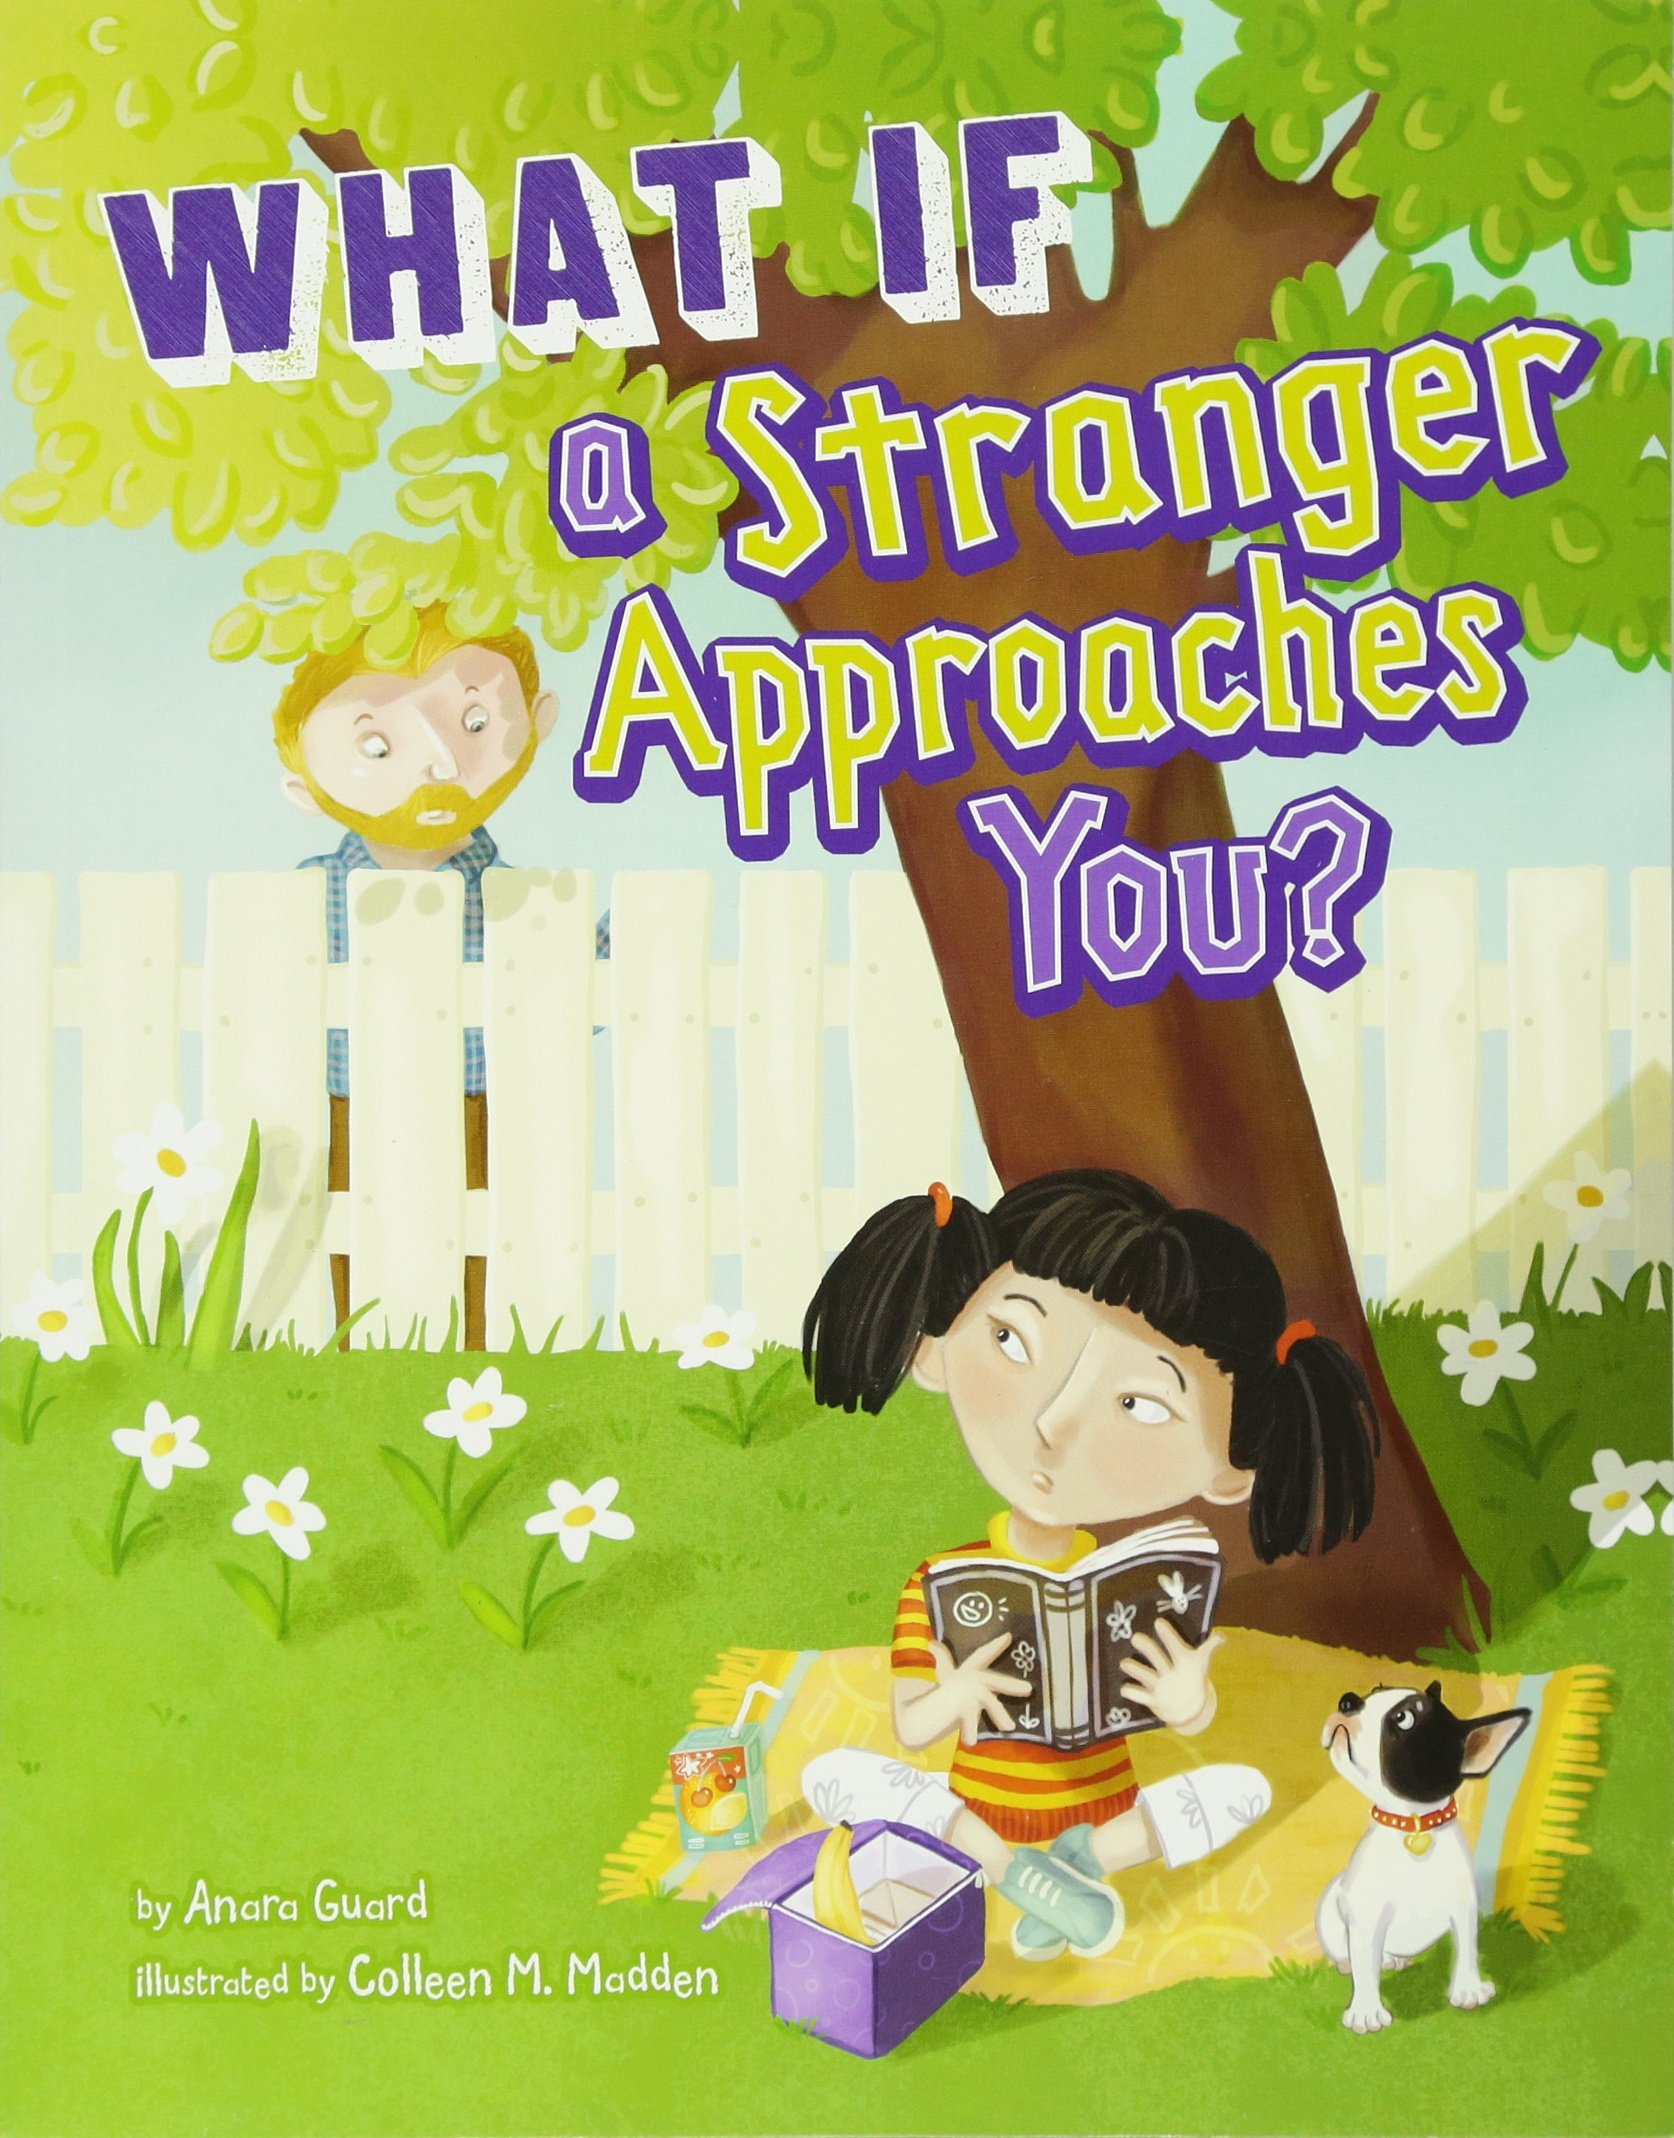 if a stranger approaches you